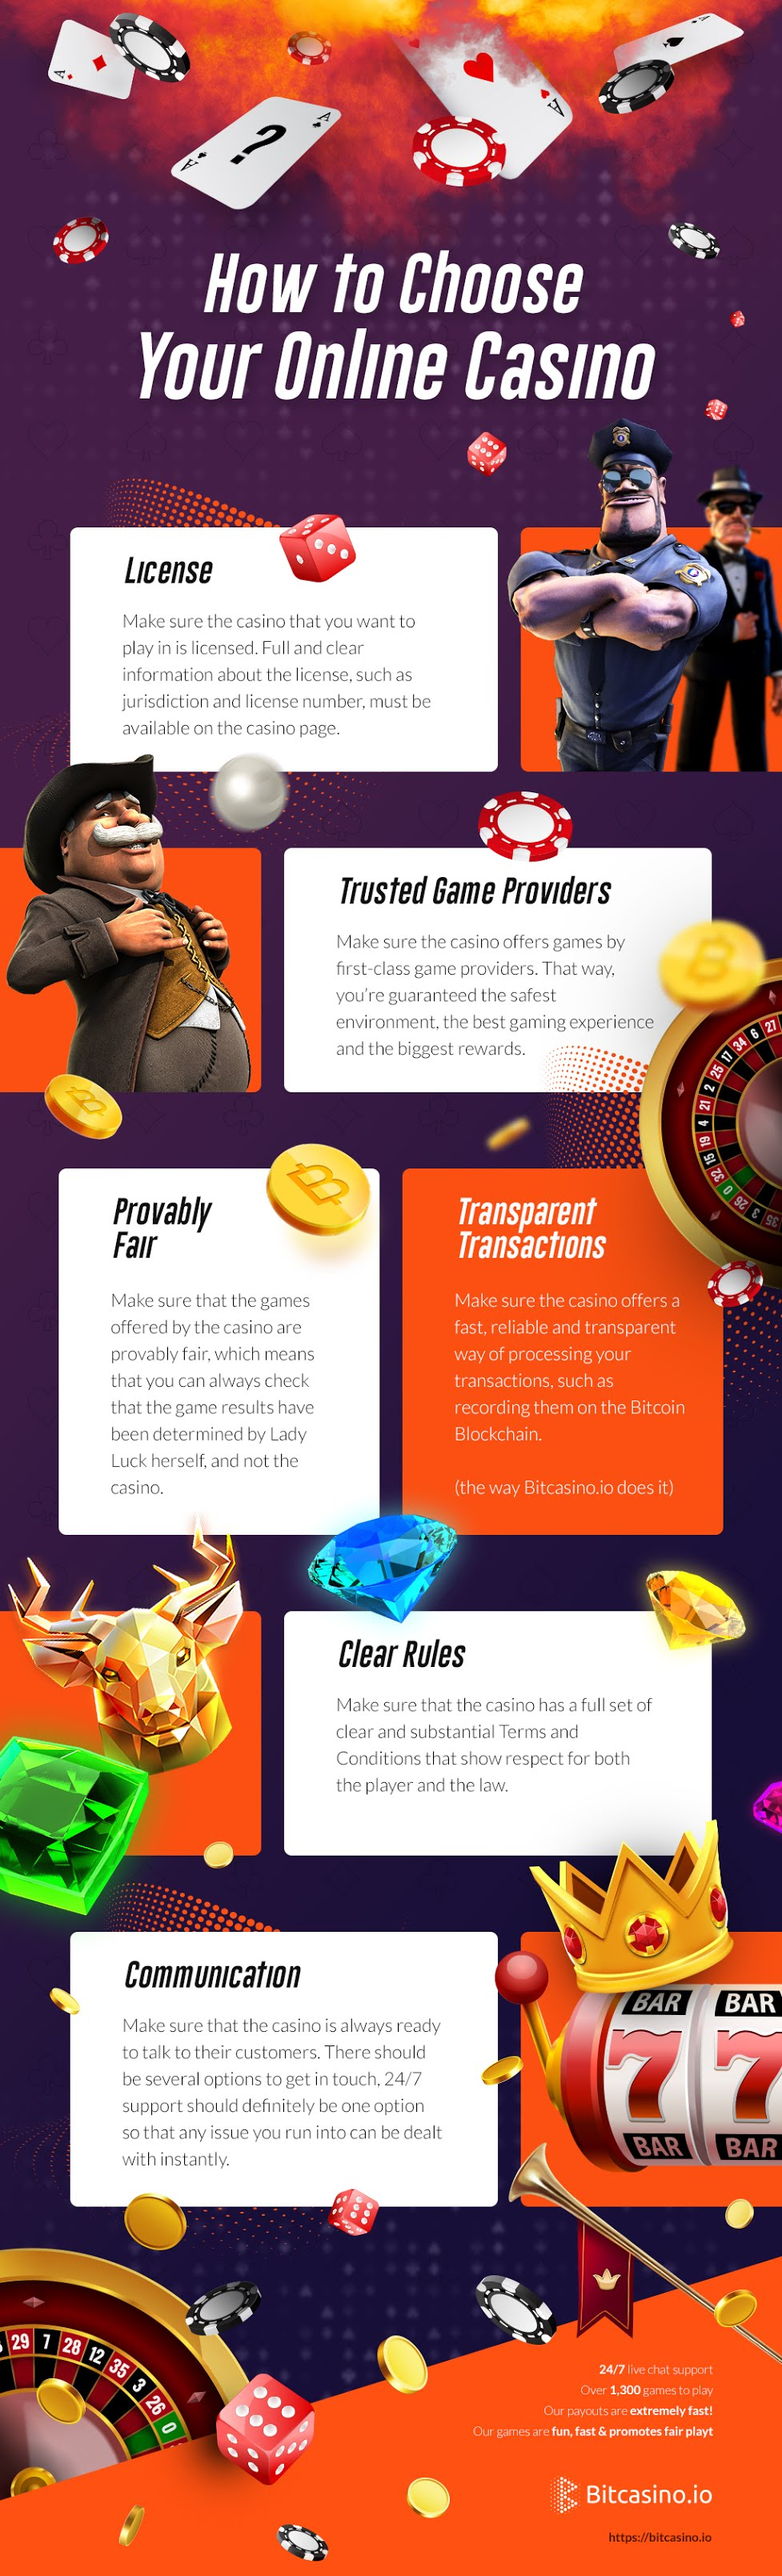 How To Choose An Online Casino #infographic